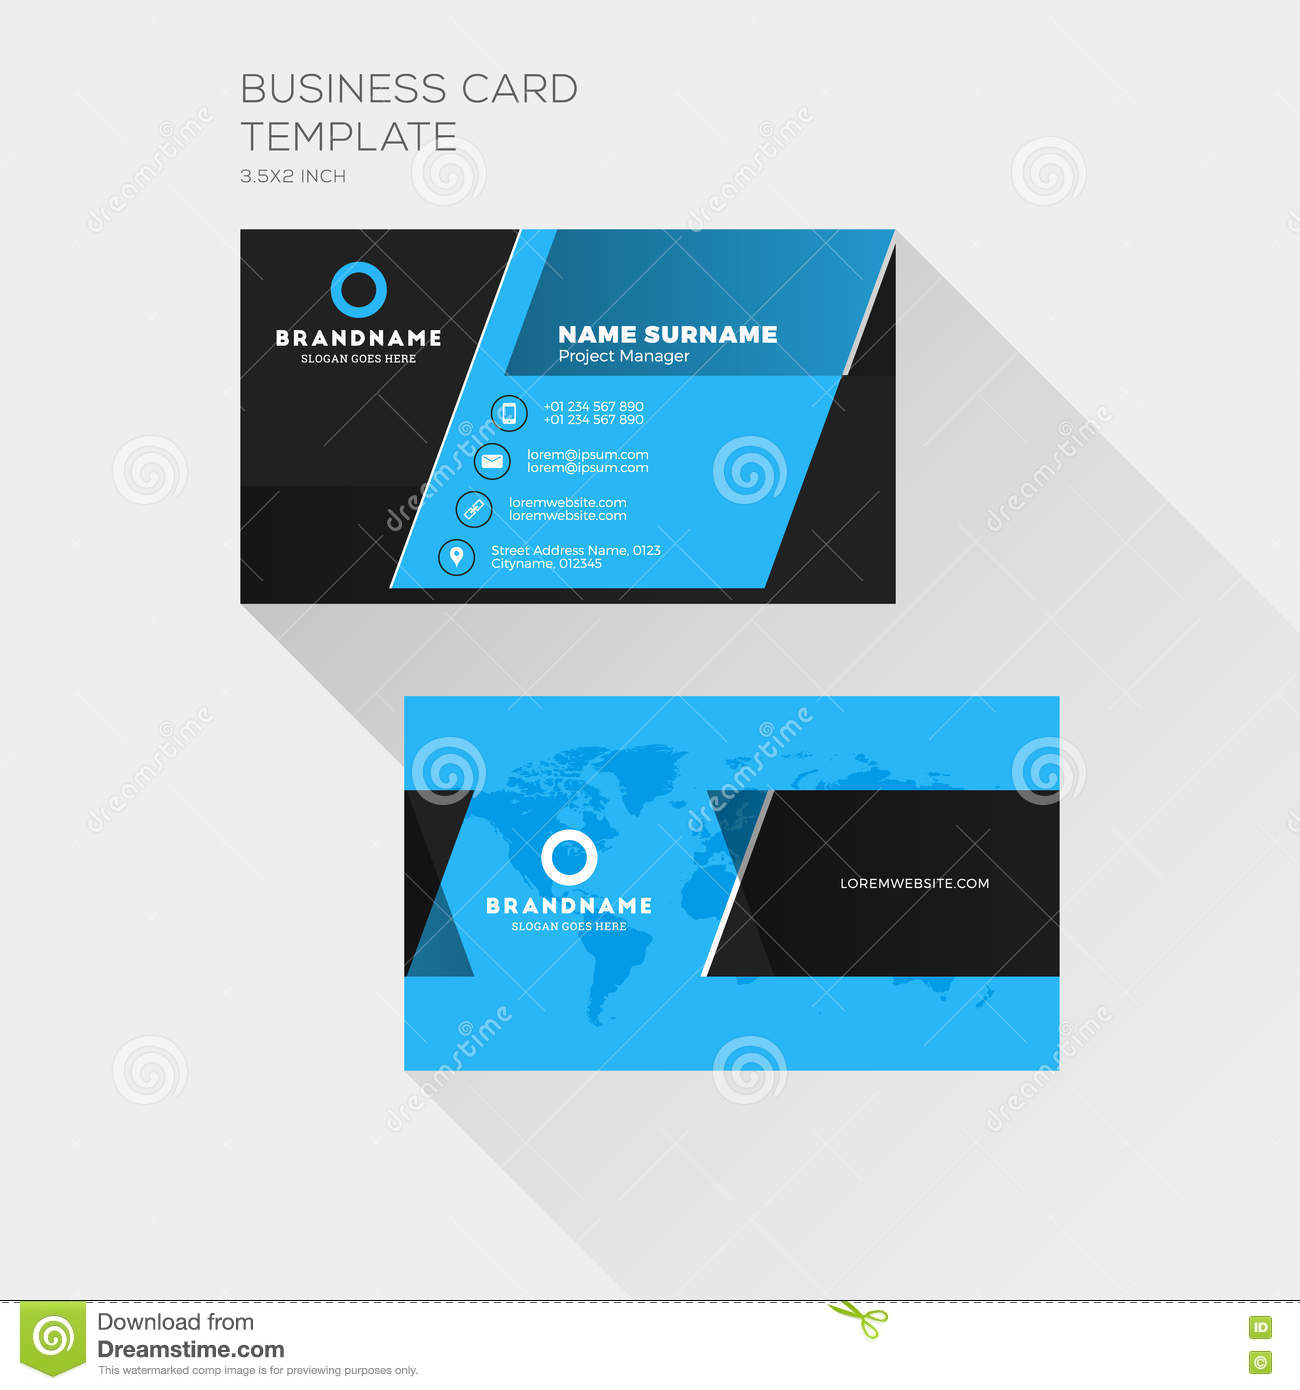 Corporate business card print template personal visiting card stock royalty free vector download corporate business card print template personal visiting card stock vector illustration of creative accmission